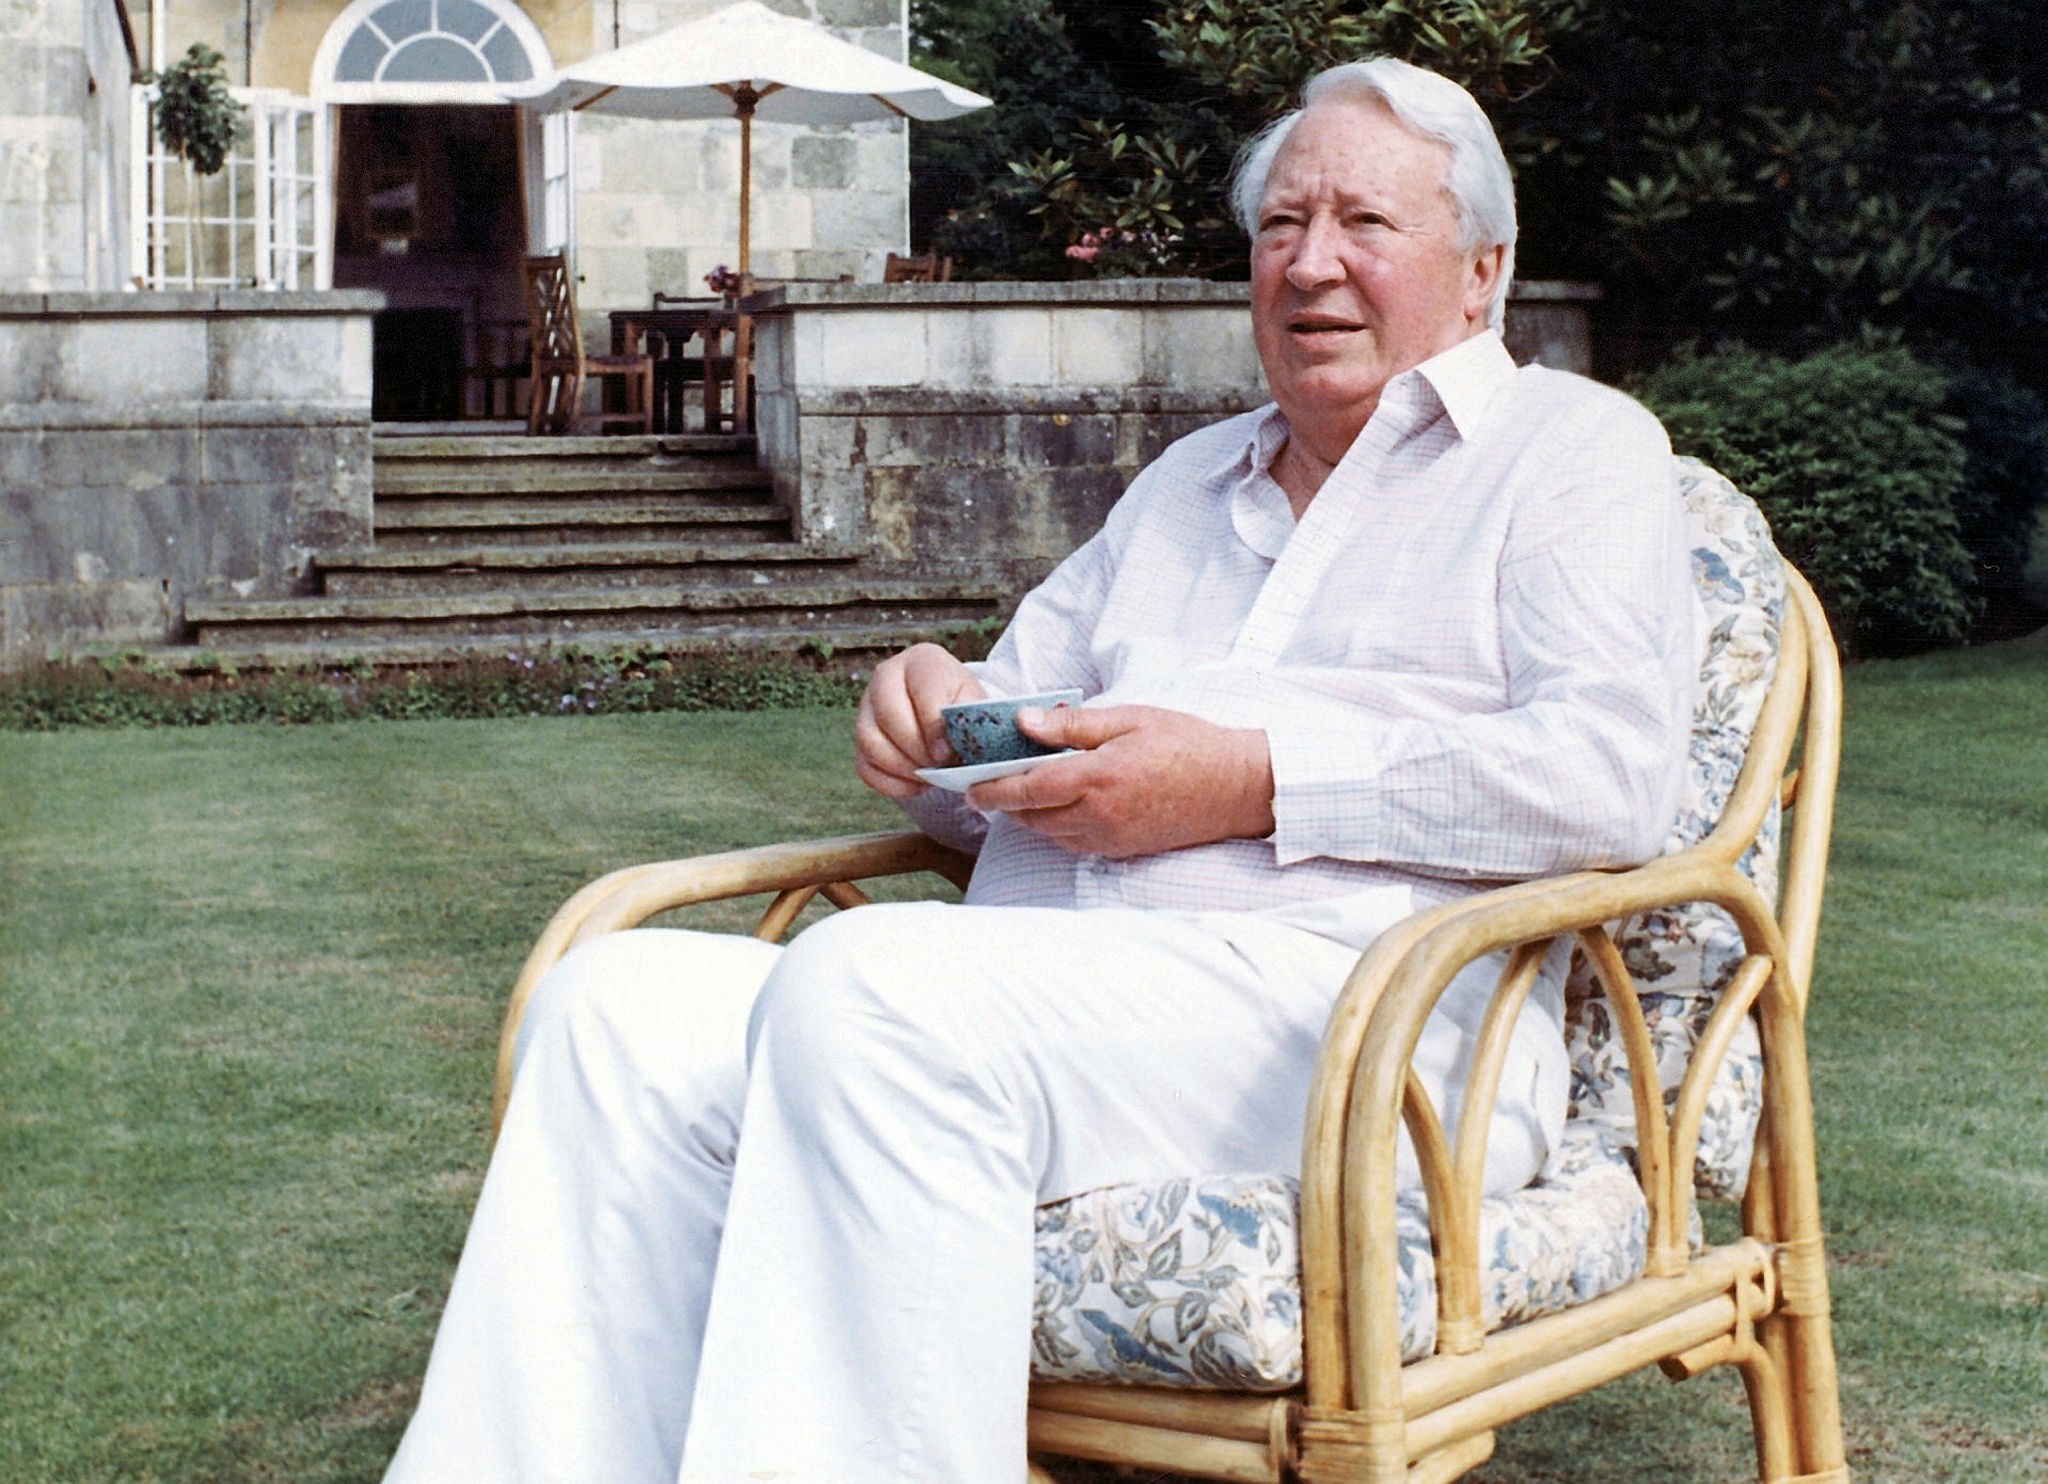 This is a July 19, 1989 file photo of former British Prime Minister Edward Heath as he takes tea in the garden of his home in Salisbury, England. (AP Photo)